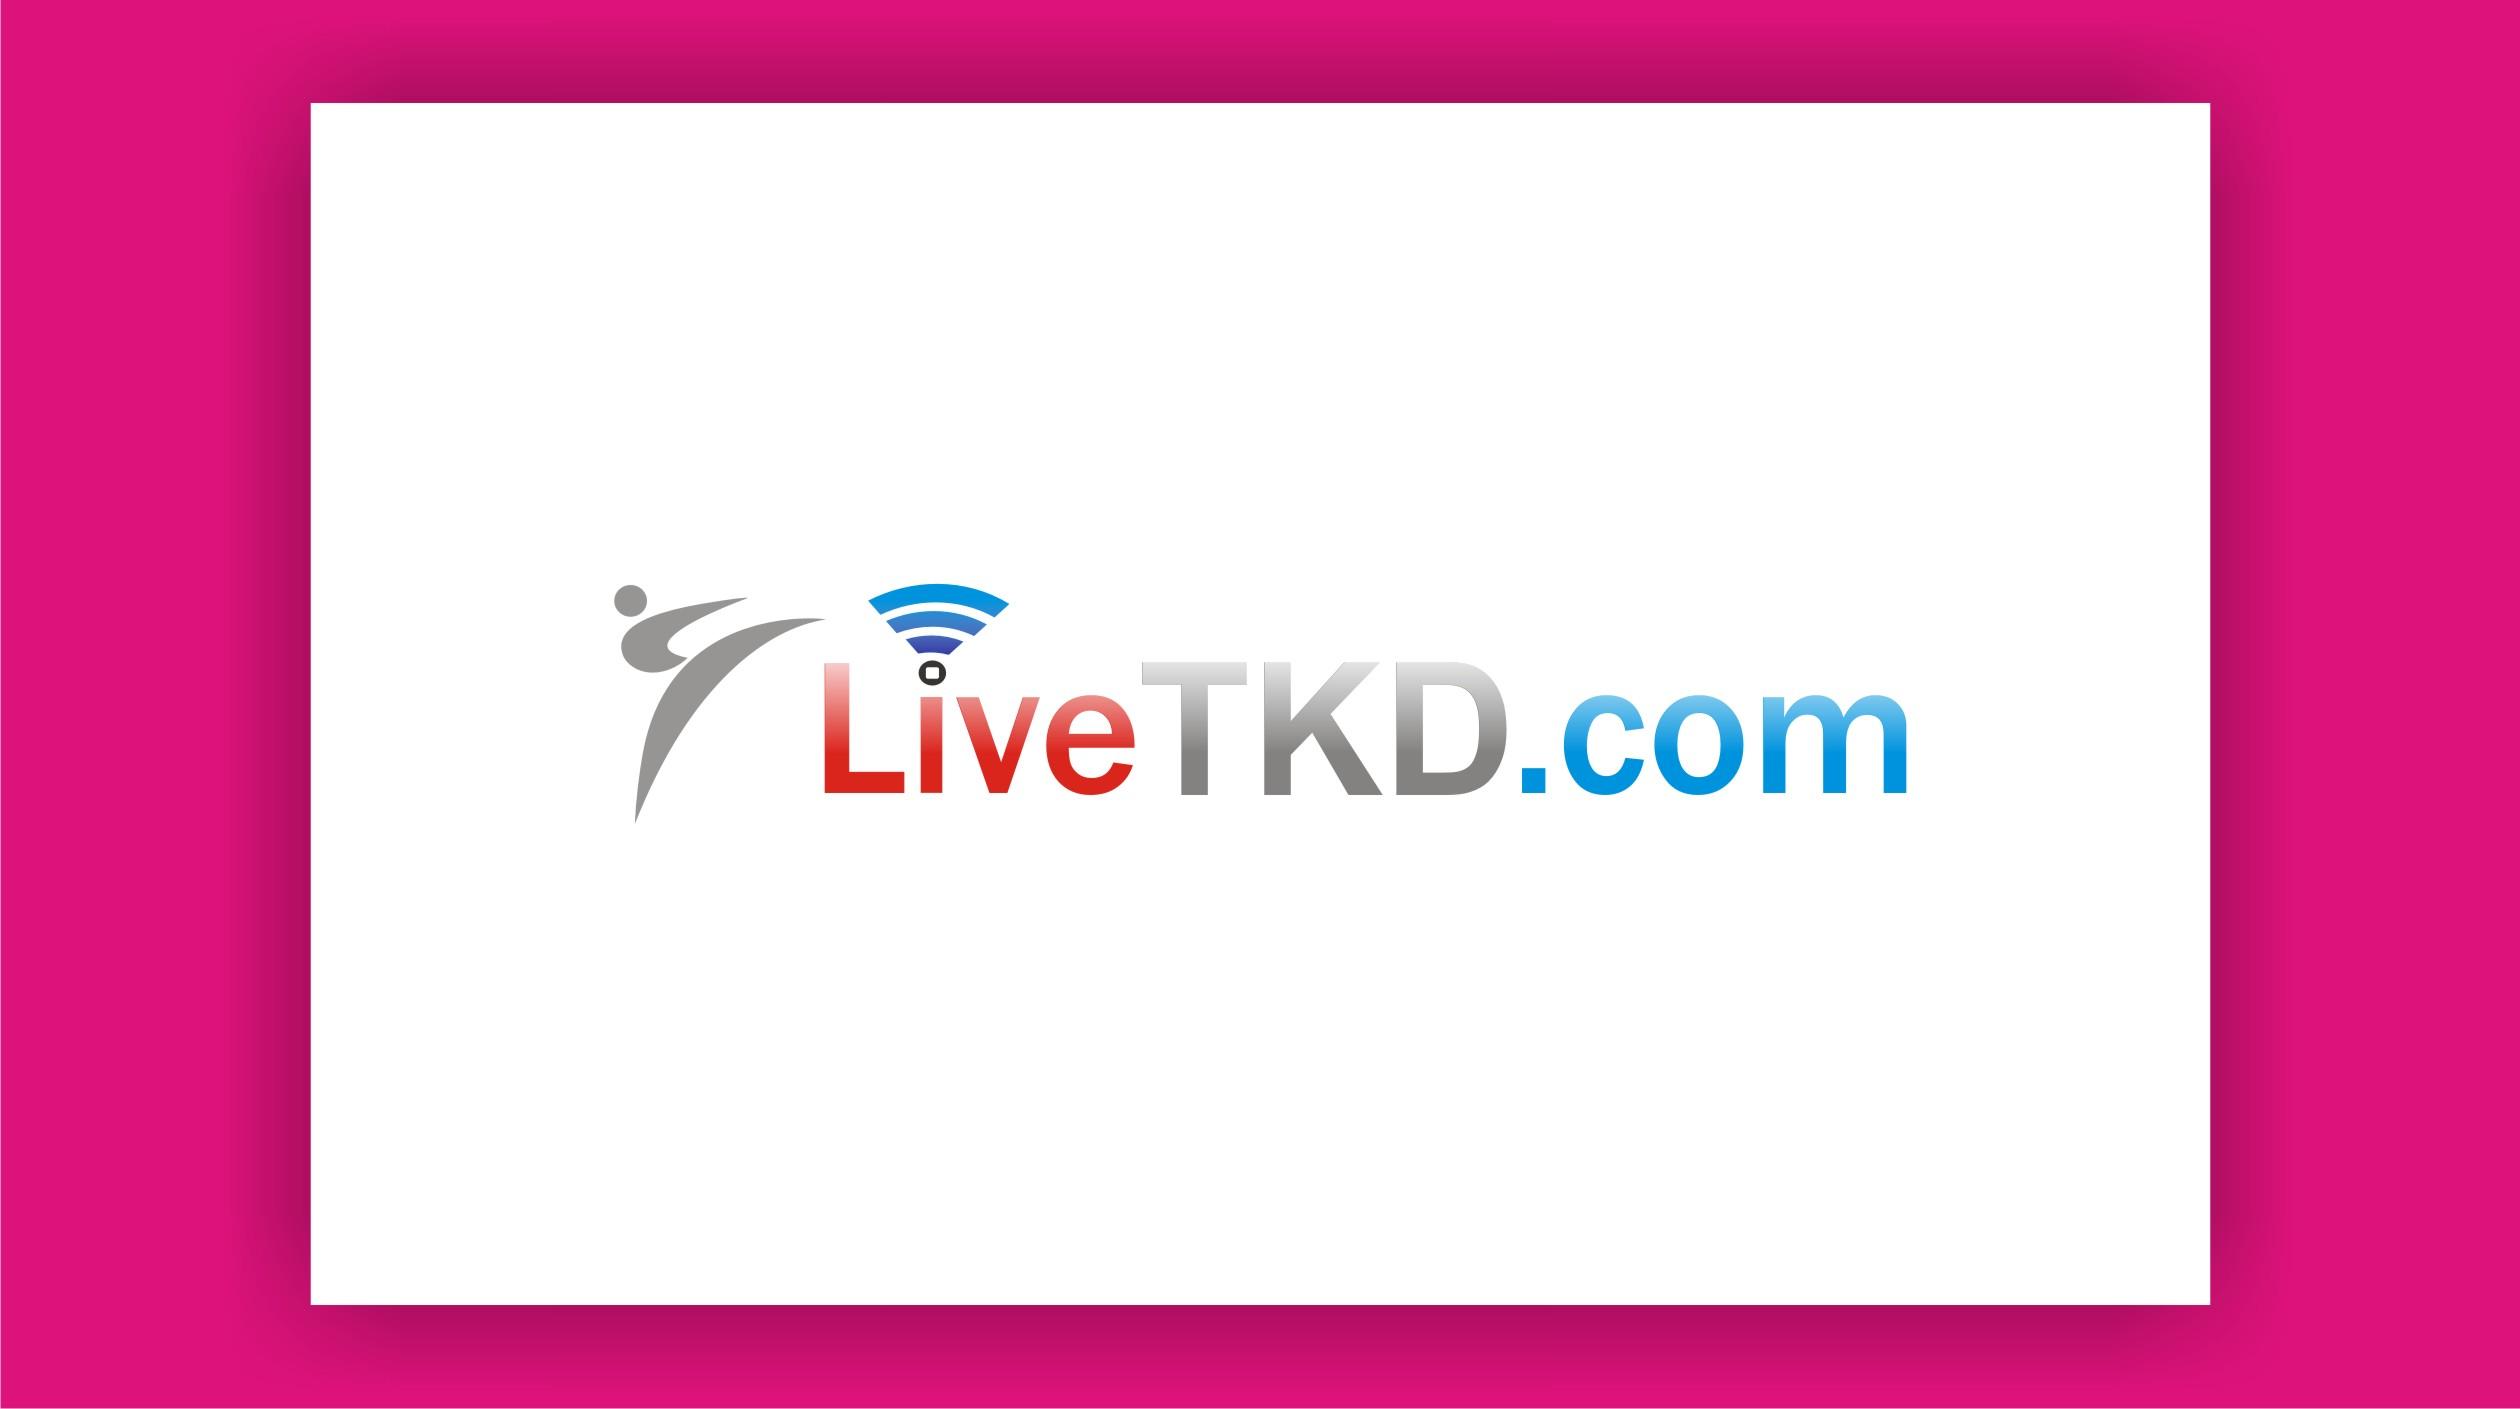 Logo Design by Shailender Kumar - Entry No. 147 in the Logo Design Contest New Logo Design for LiveTKD.com.